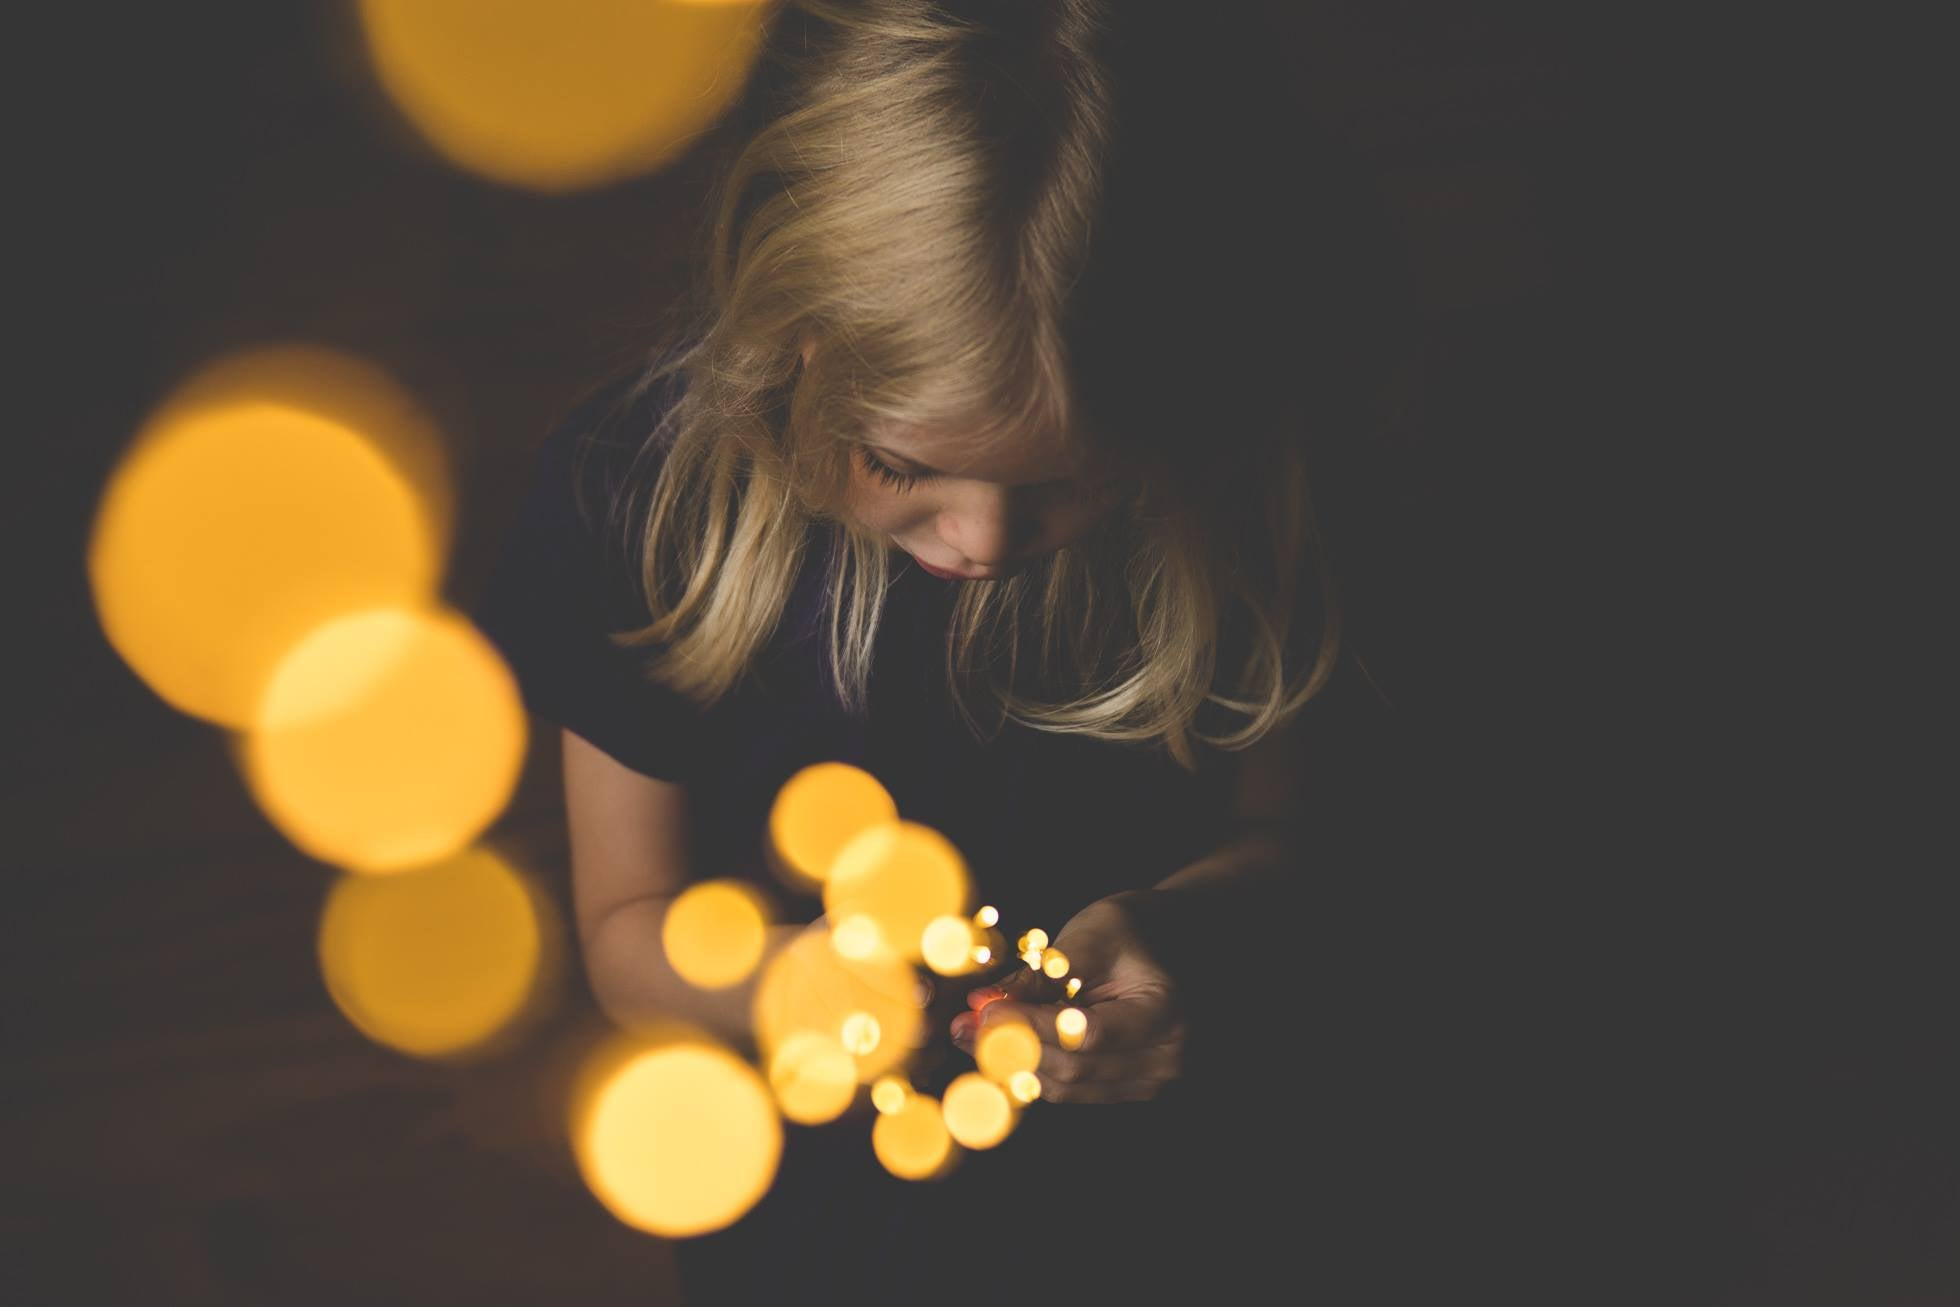 girl with blond hair and yellow glowing lights black background featured photos lensbaby